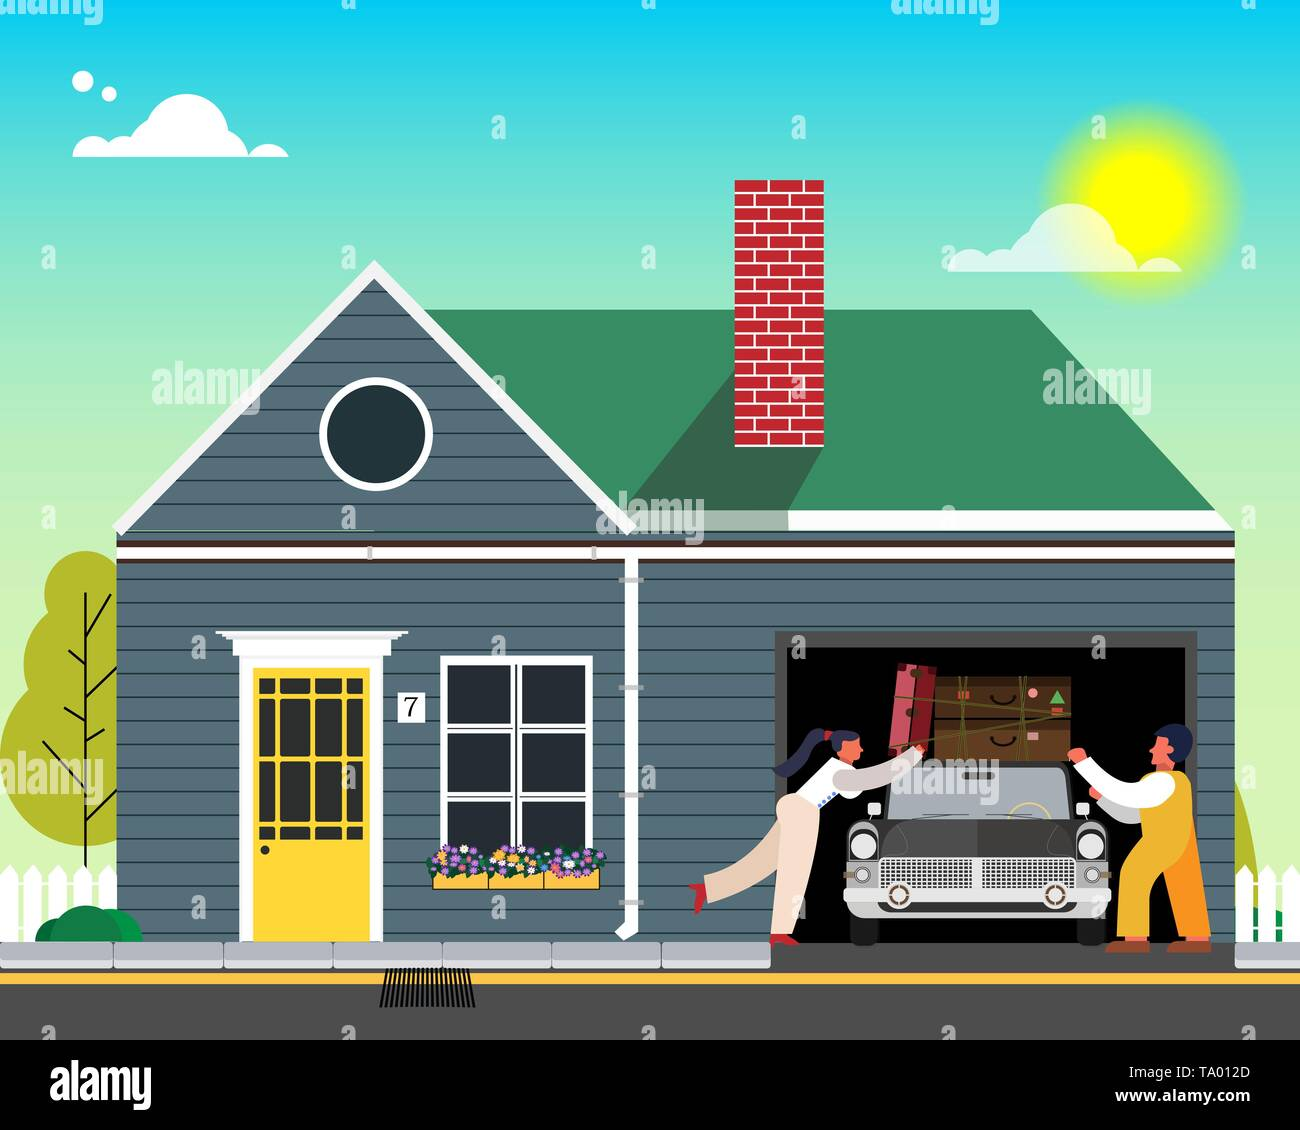 Family is going to rest. Loading things on the car near the house. Vector illustration. - Stock Vector